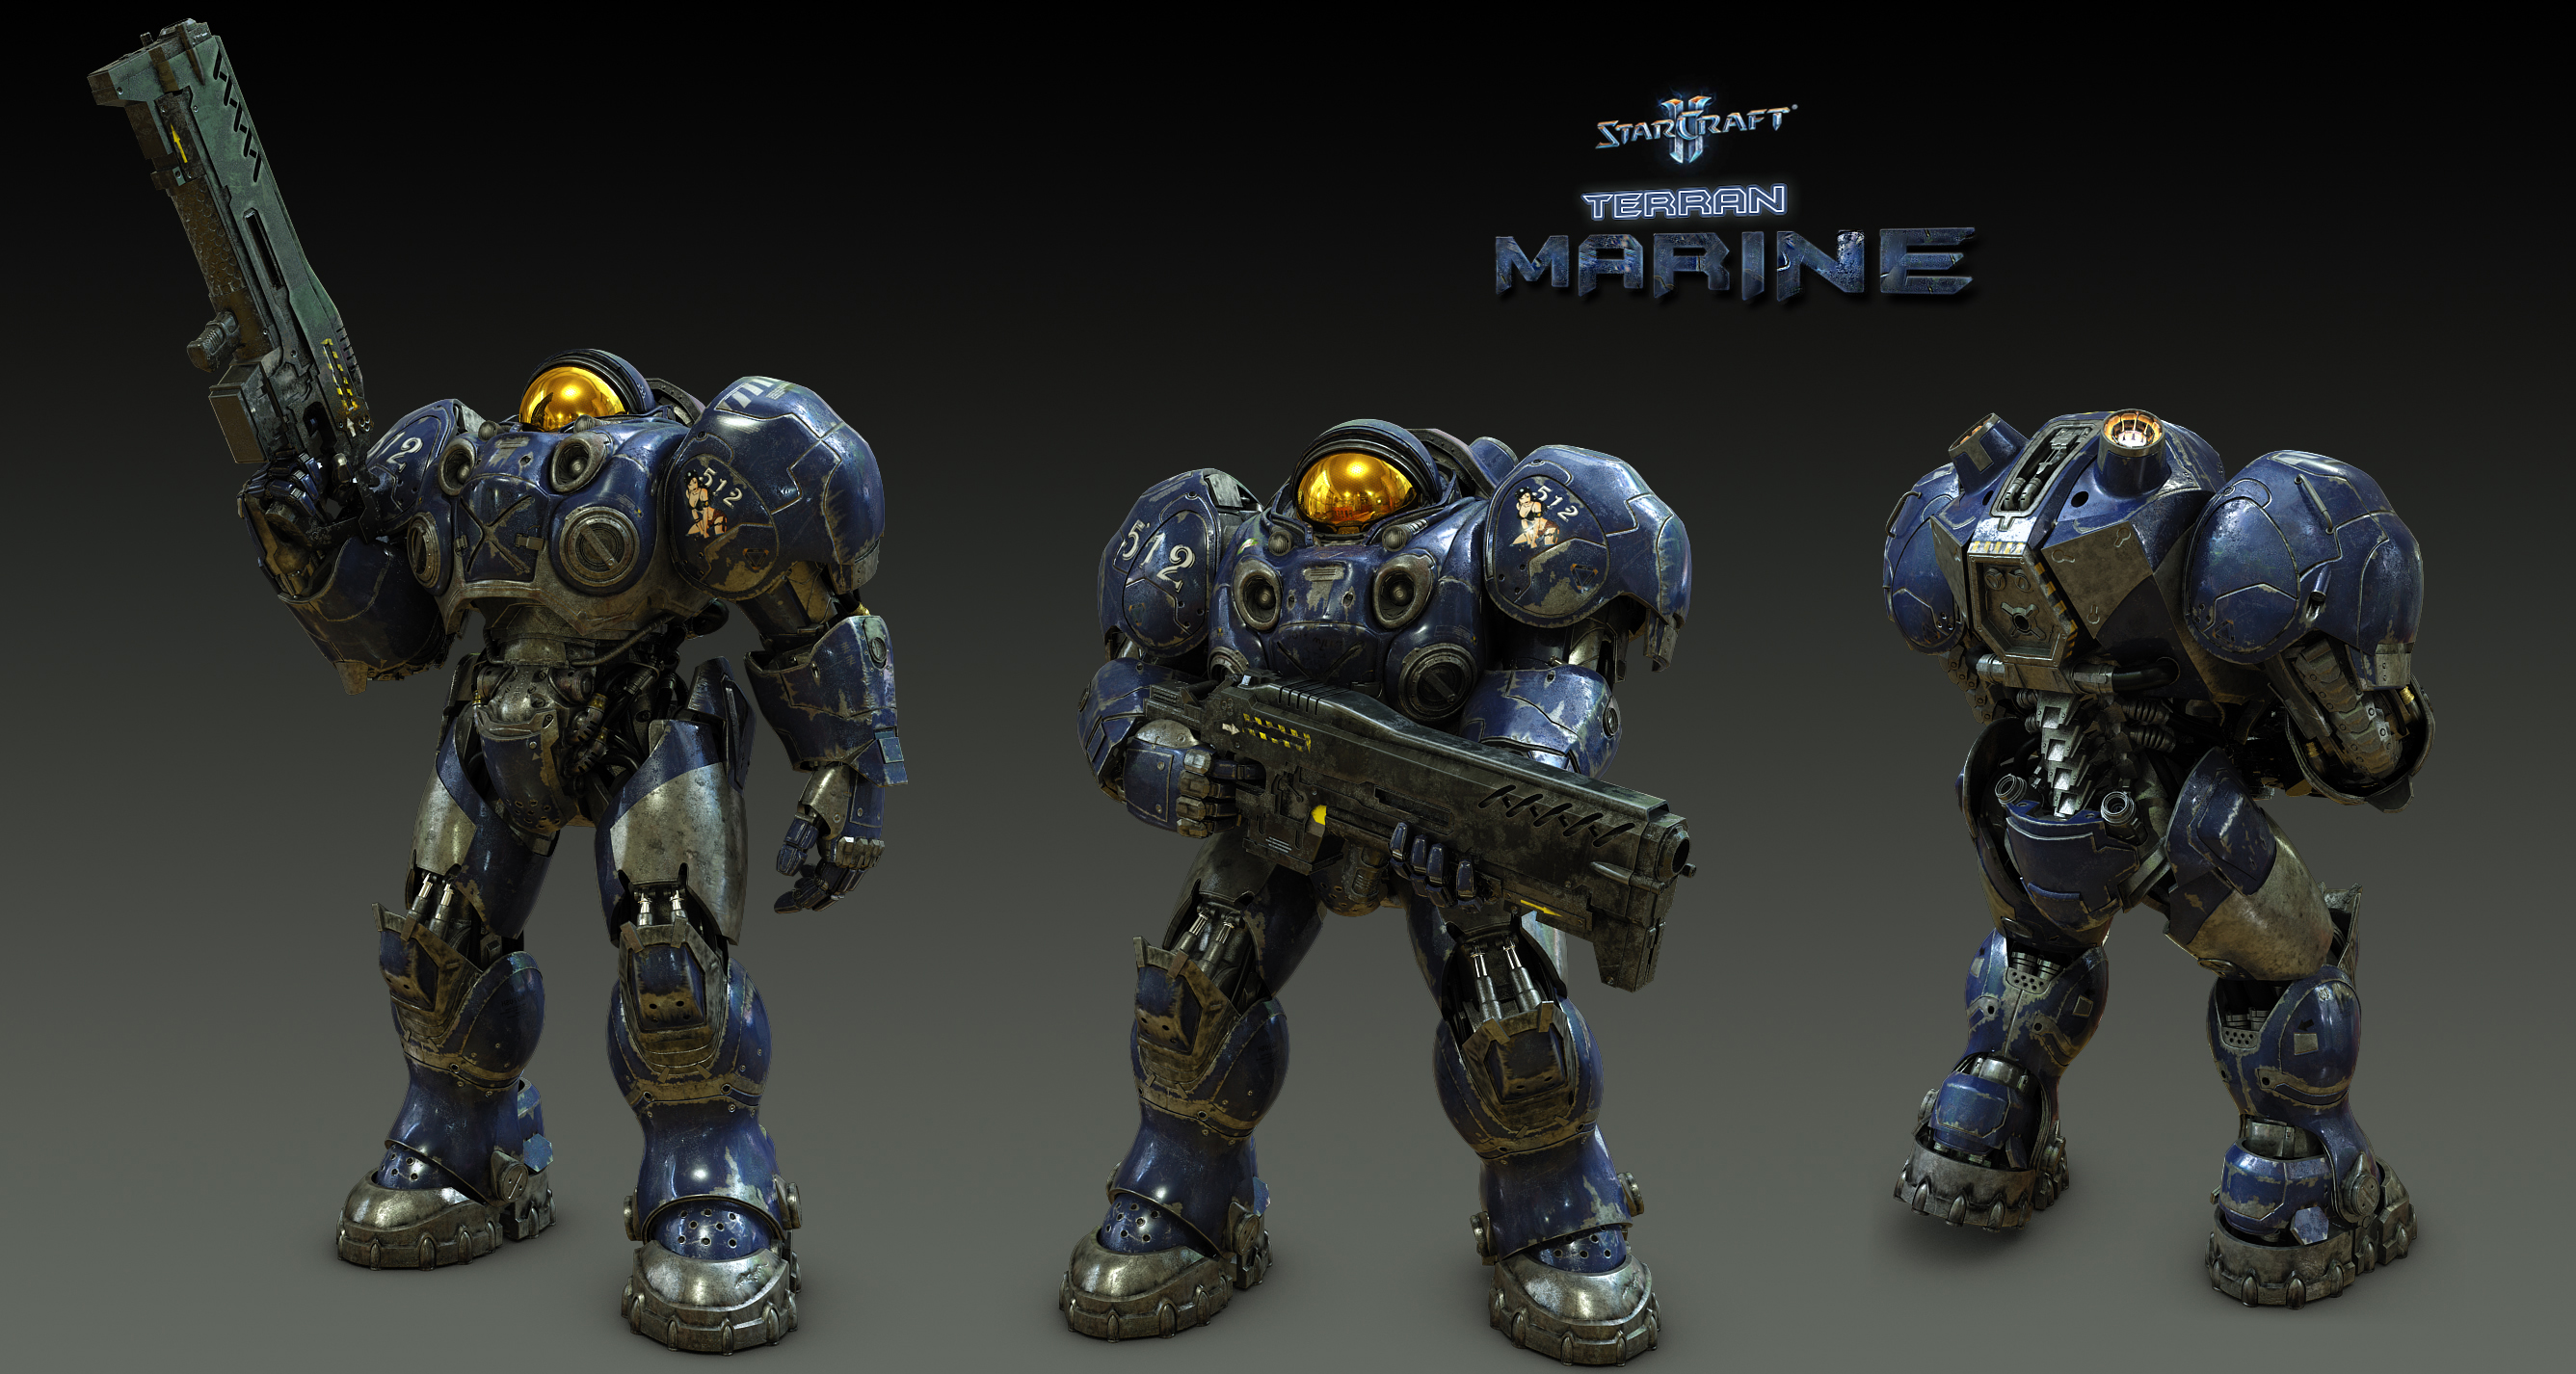 starcraft ii terran marine gauss rifle 3dtotal forums. Black Bedroom Furniture Sets. Home Design Ideas